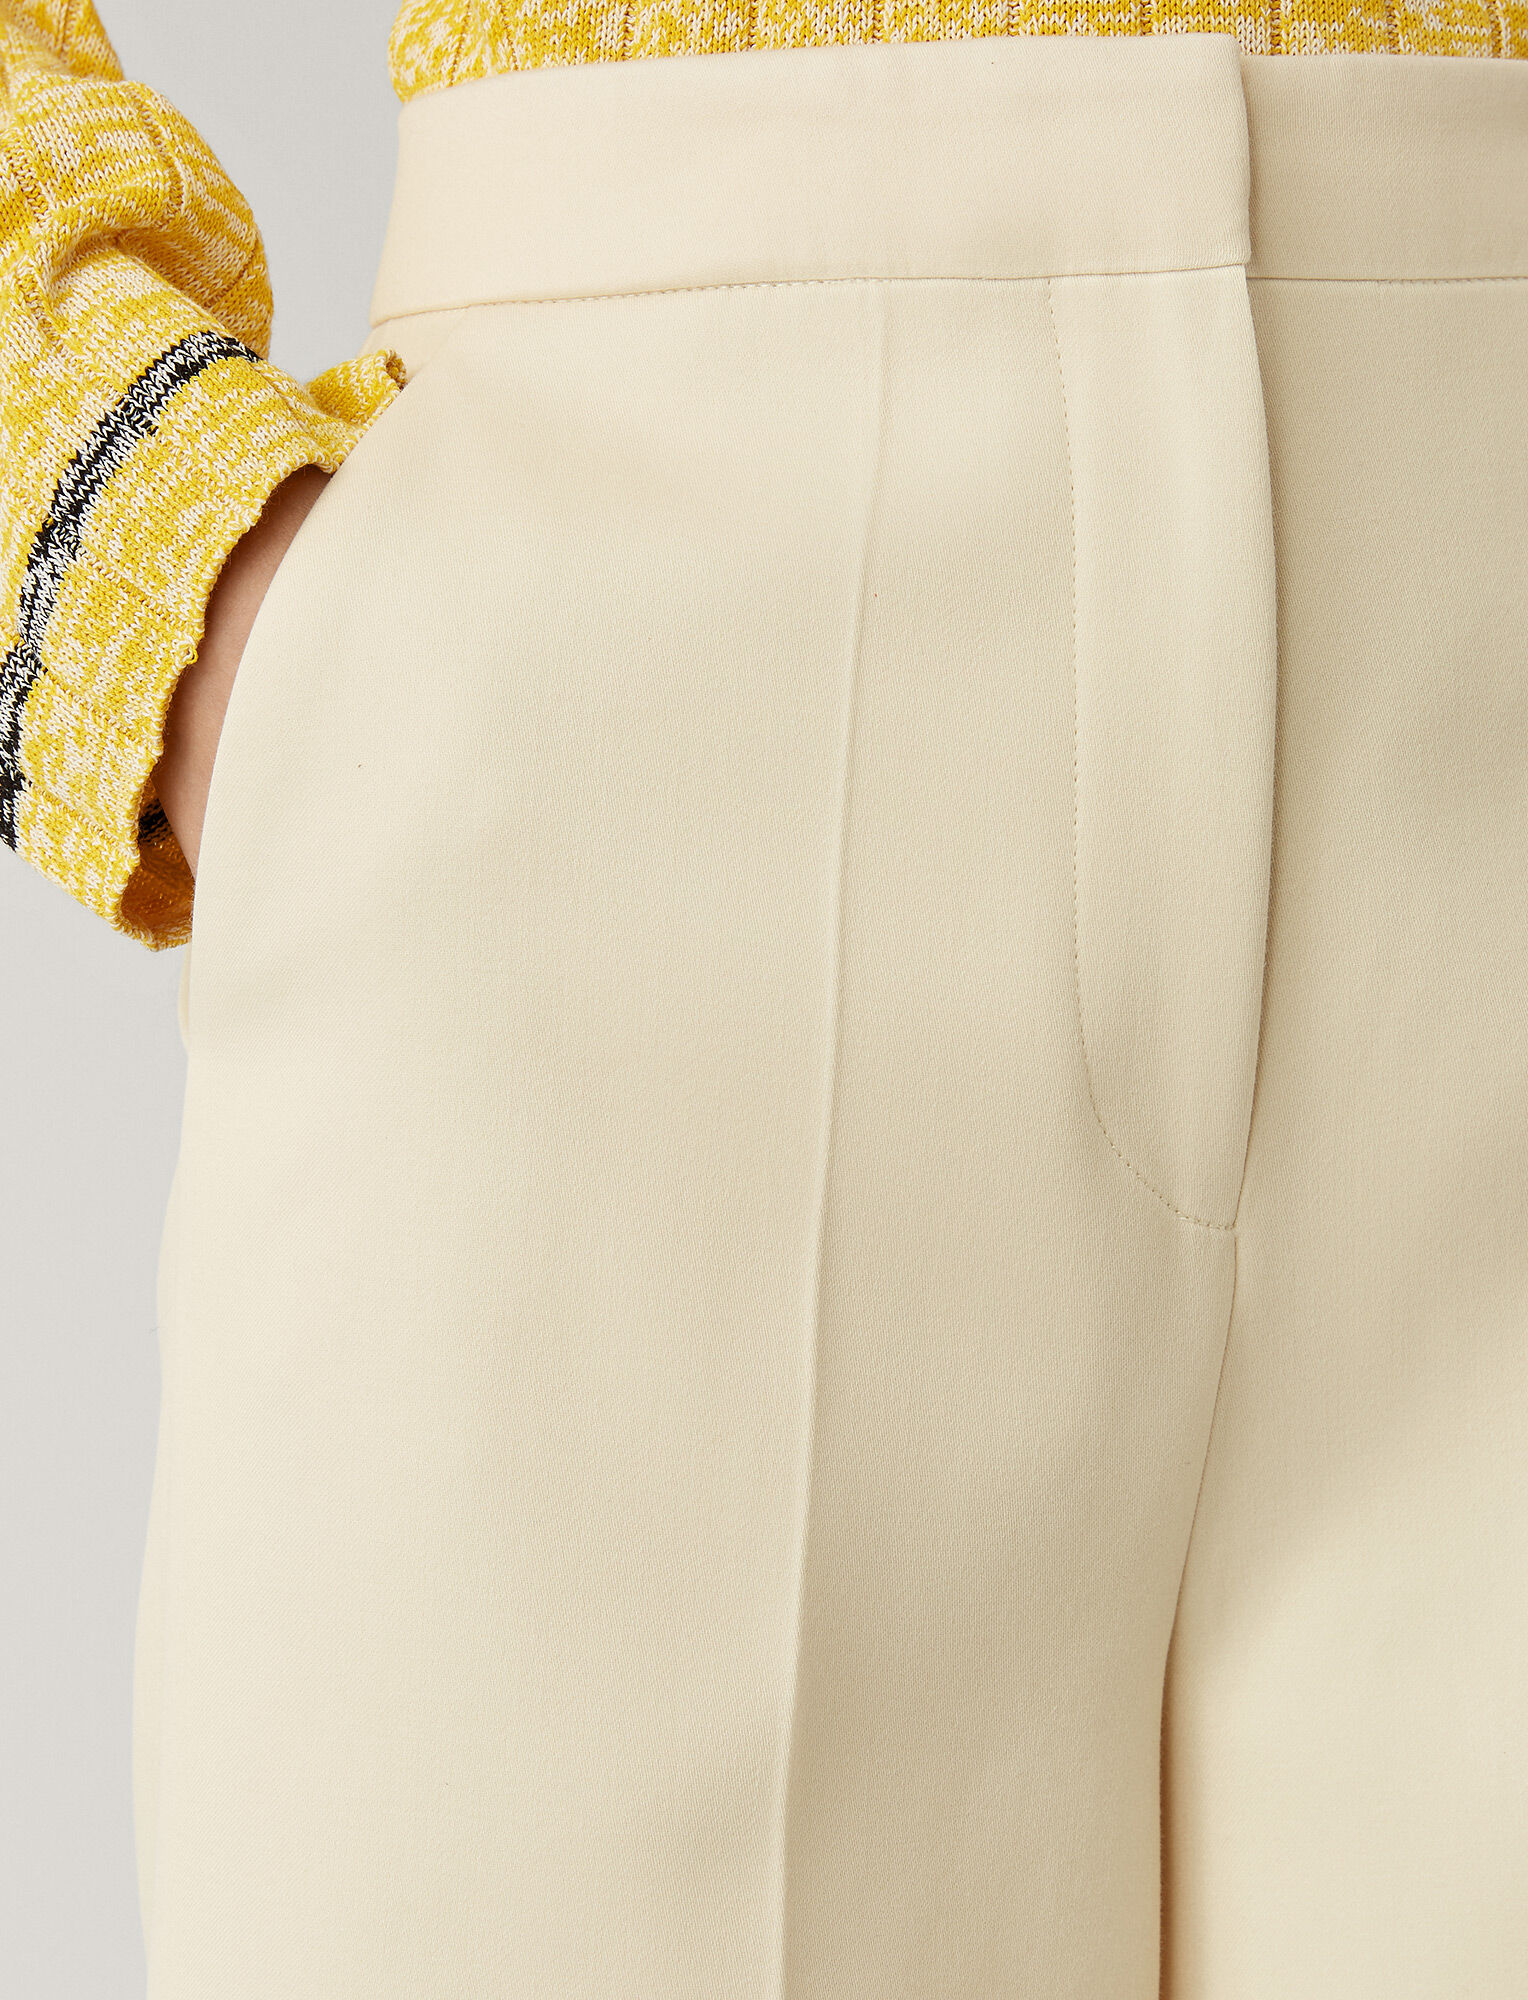 Joseph, Toy Cotton Sateen Trousers, in CREAM